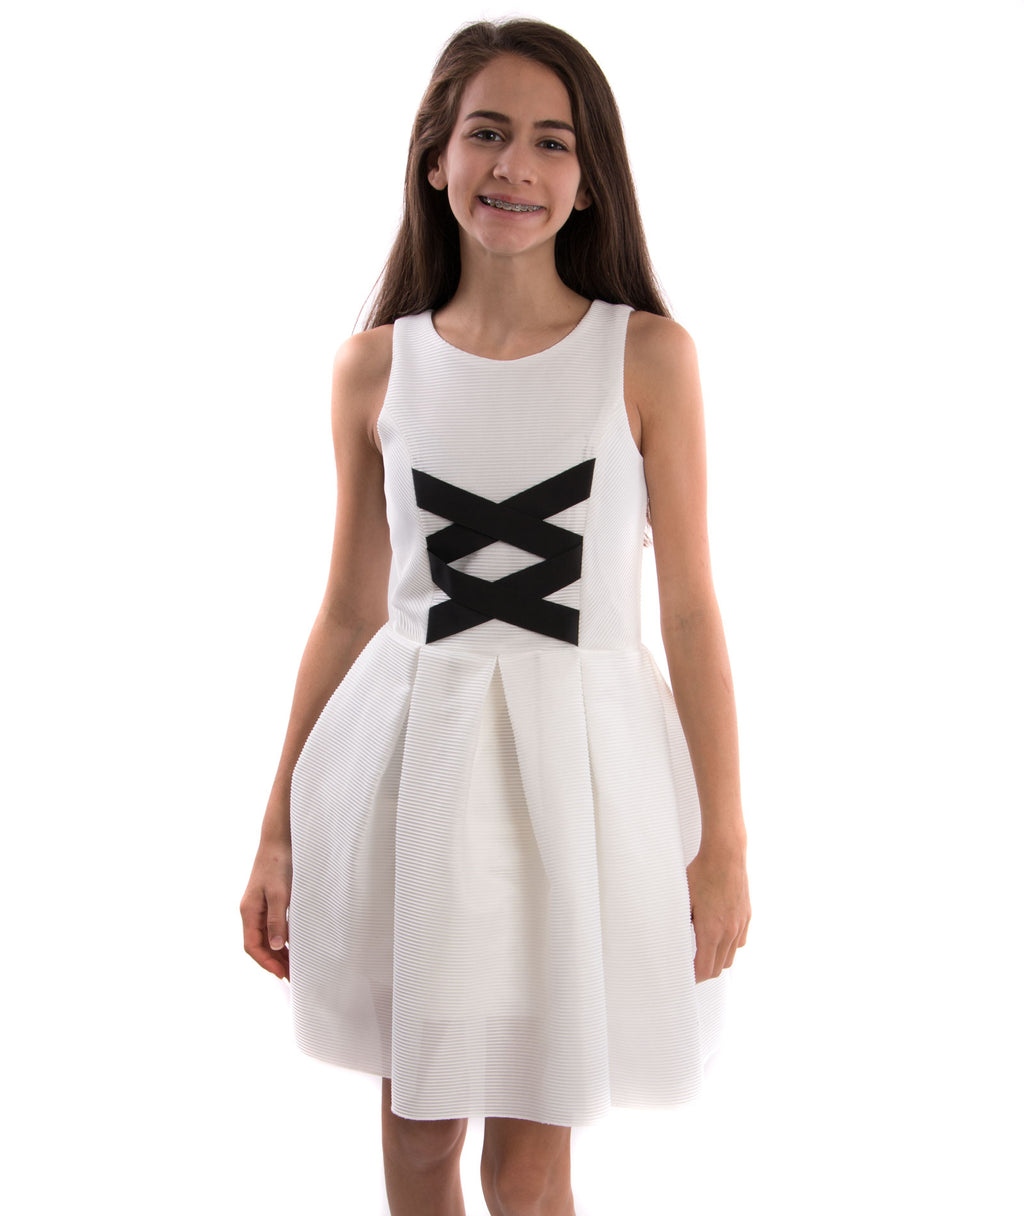 Zoe Ltd. Girls Ballet Cross Black & White Dress - Frankie's on the Park